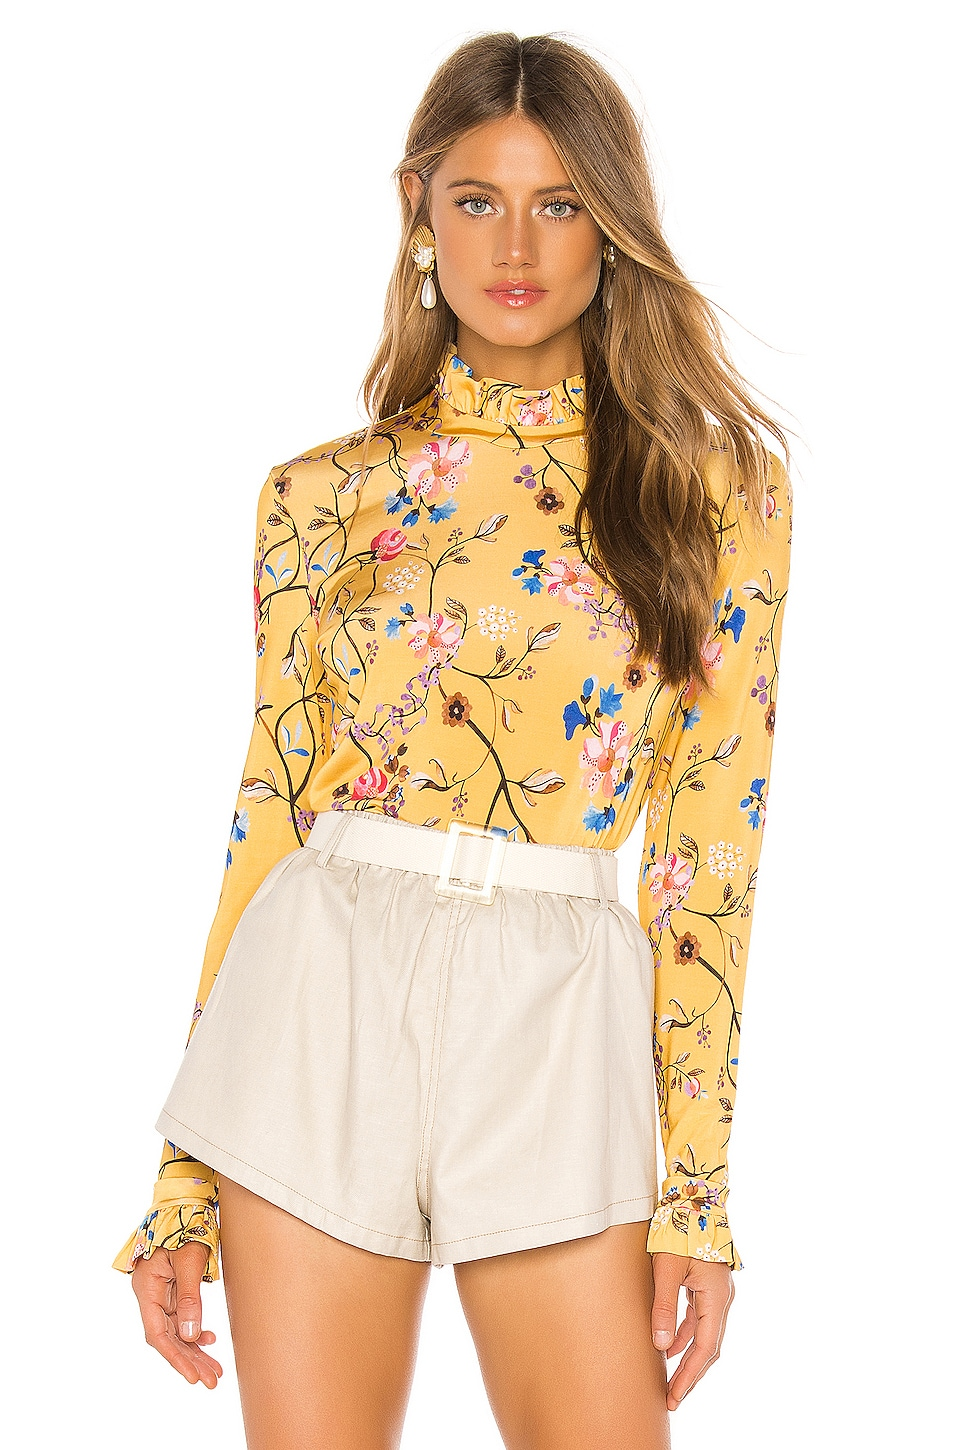 Stine Goya Manila Top in Floral Vines